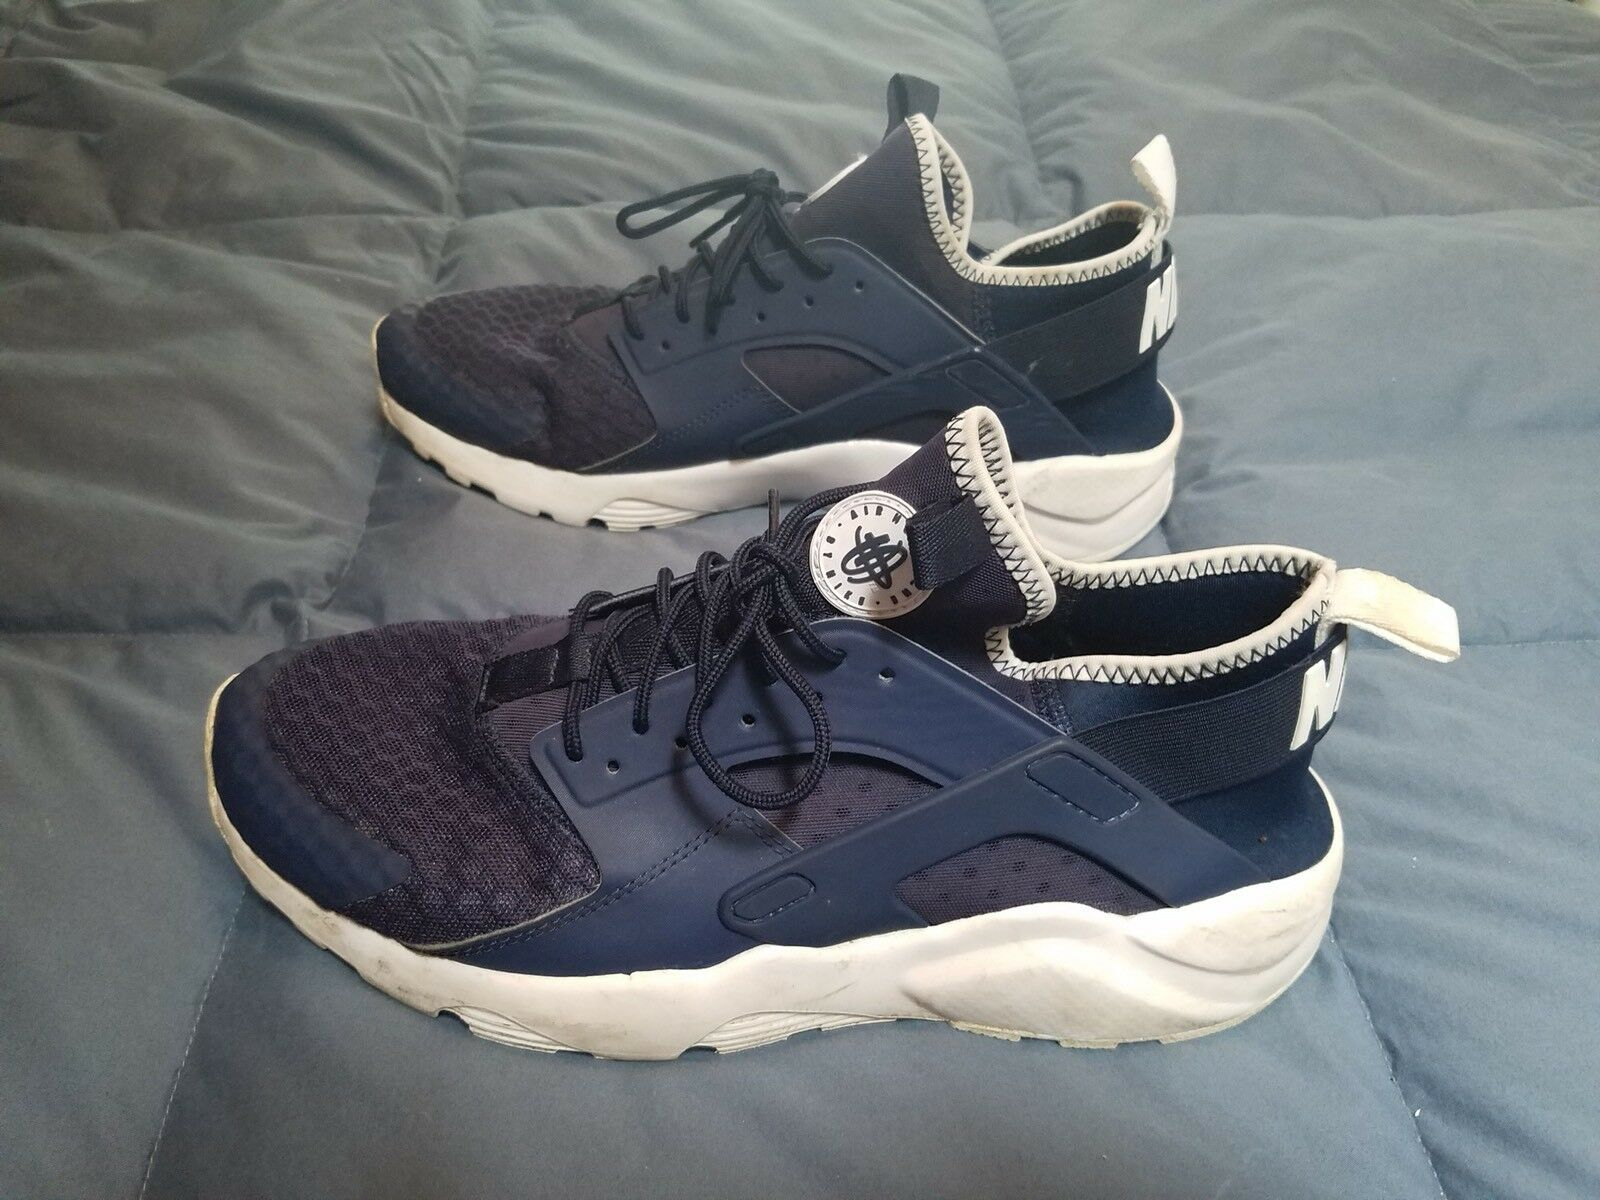 NIKE AIR HUARACHE RUN Size 11